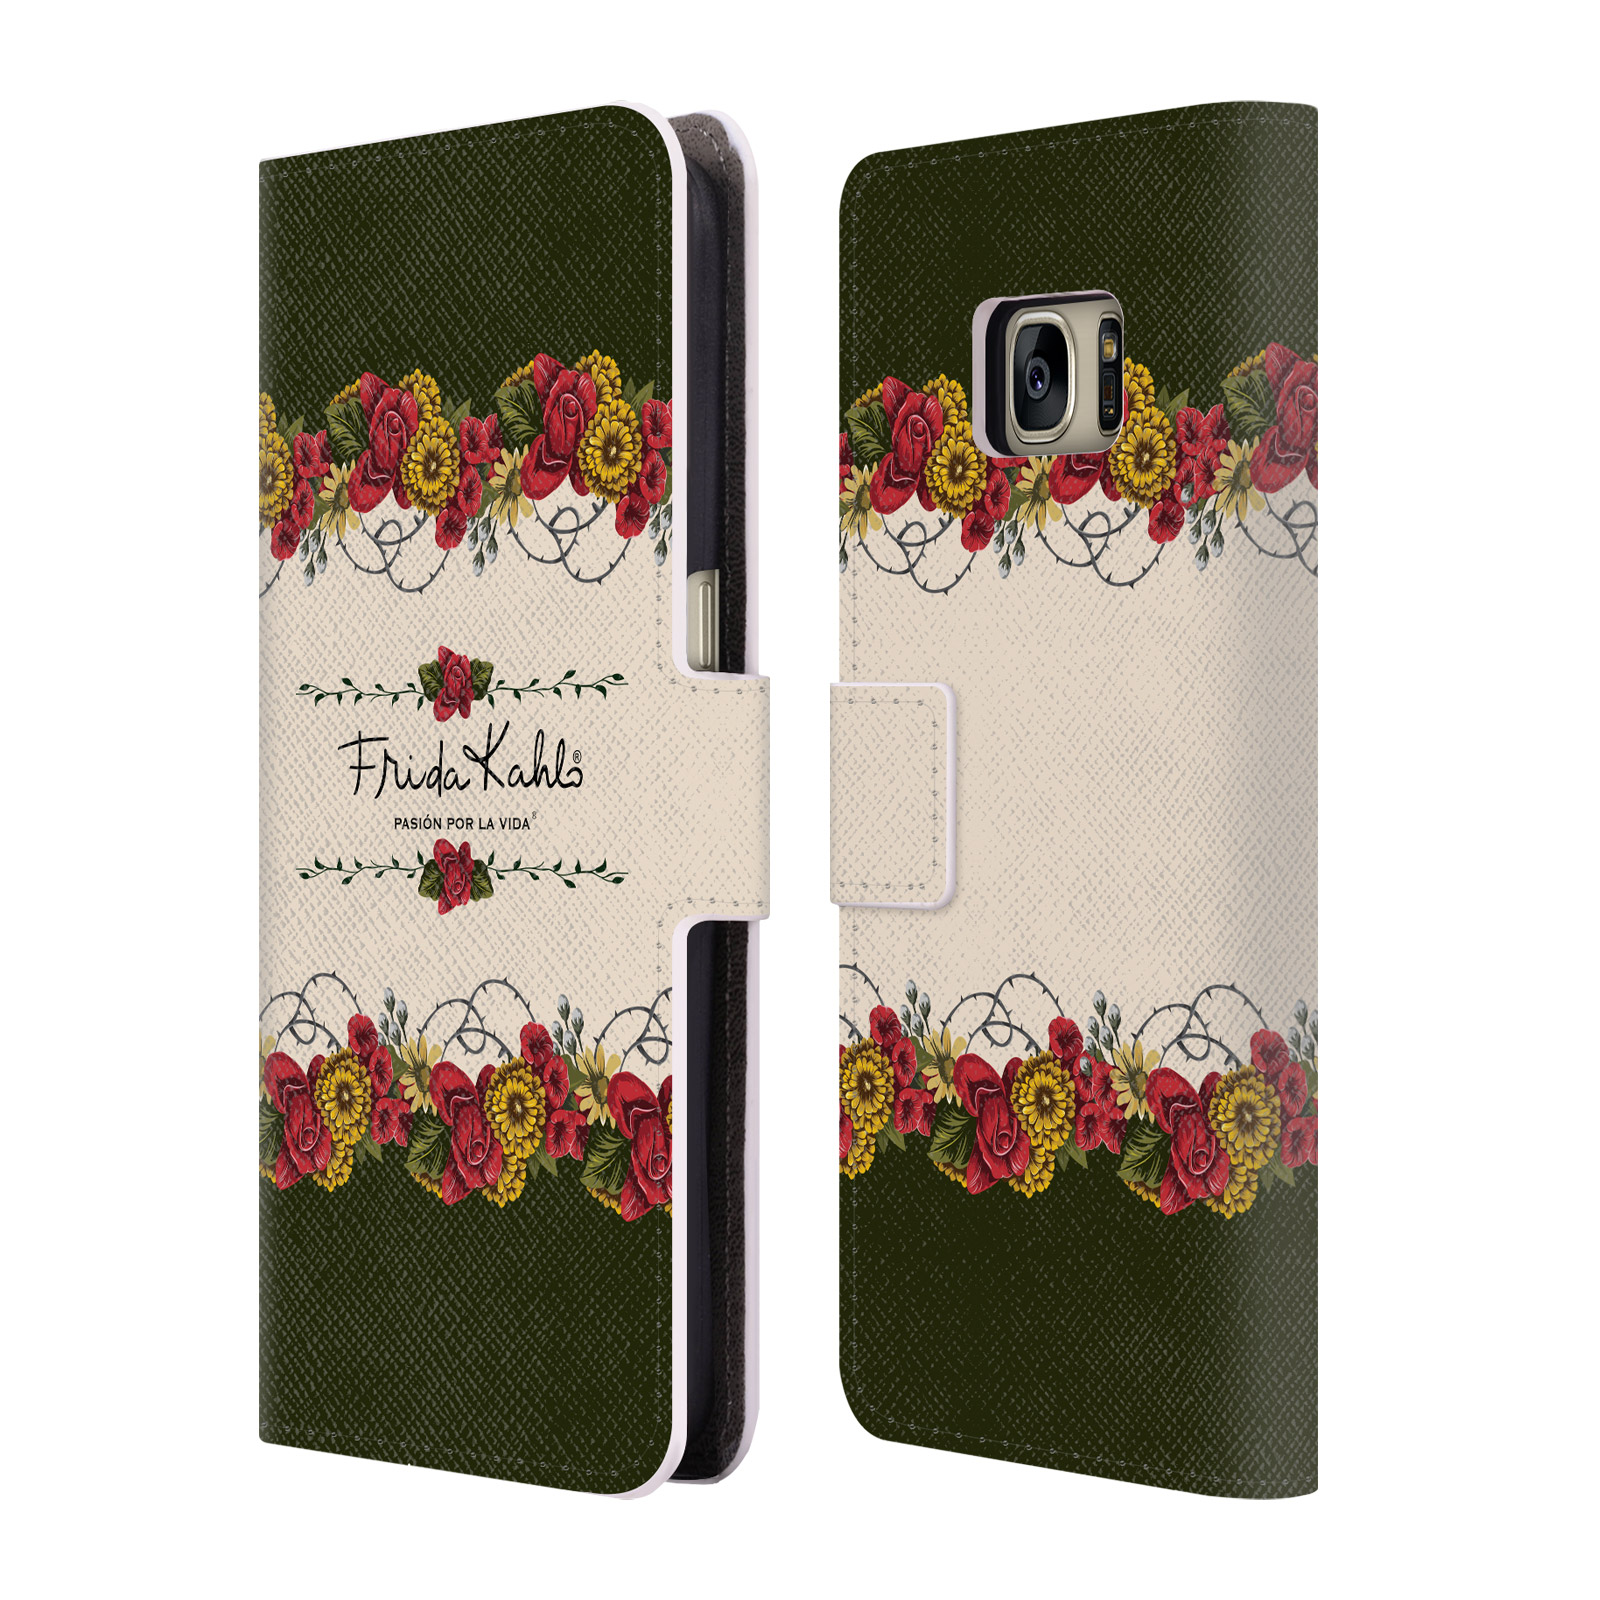 OFFICIAL FRIDA KAHLO RED FLORALS LEATHER BOOK WALLET CASE COVER FOR SAMSUNG PHONES 1